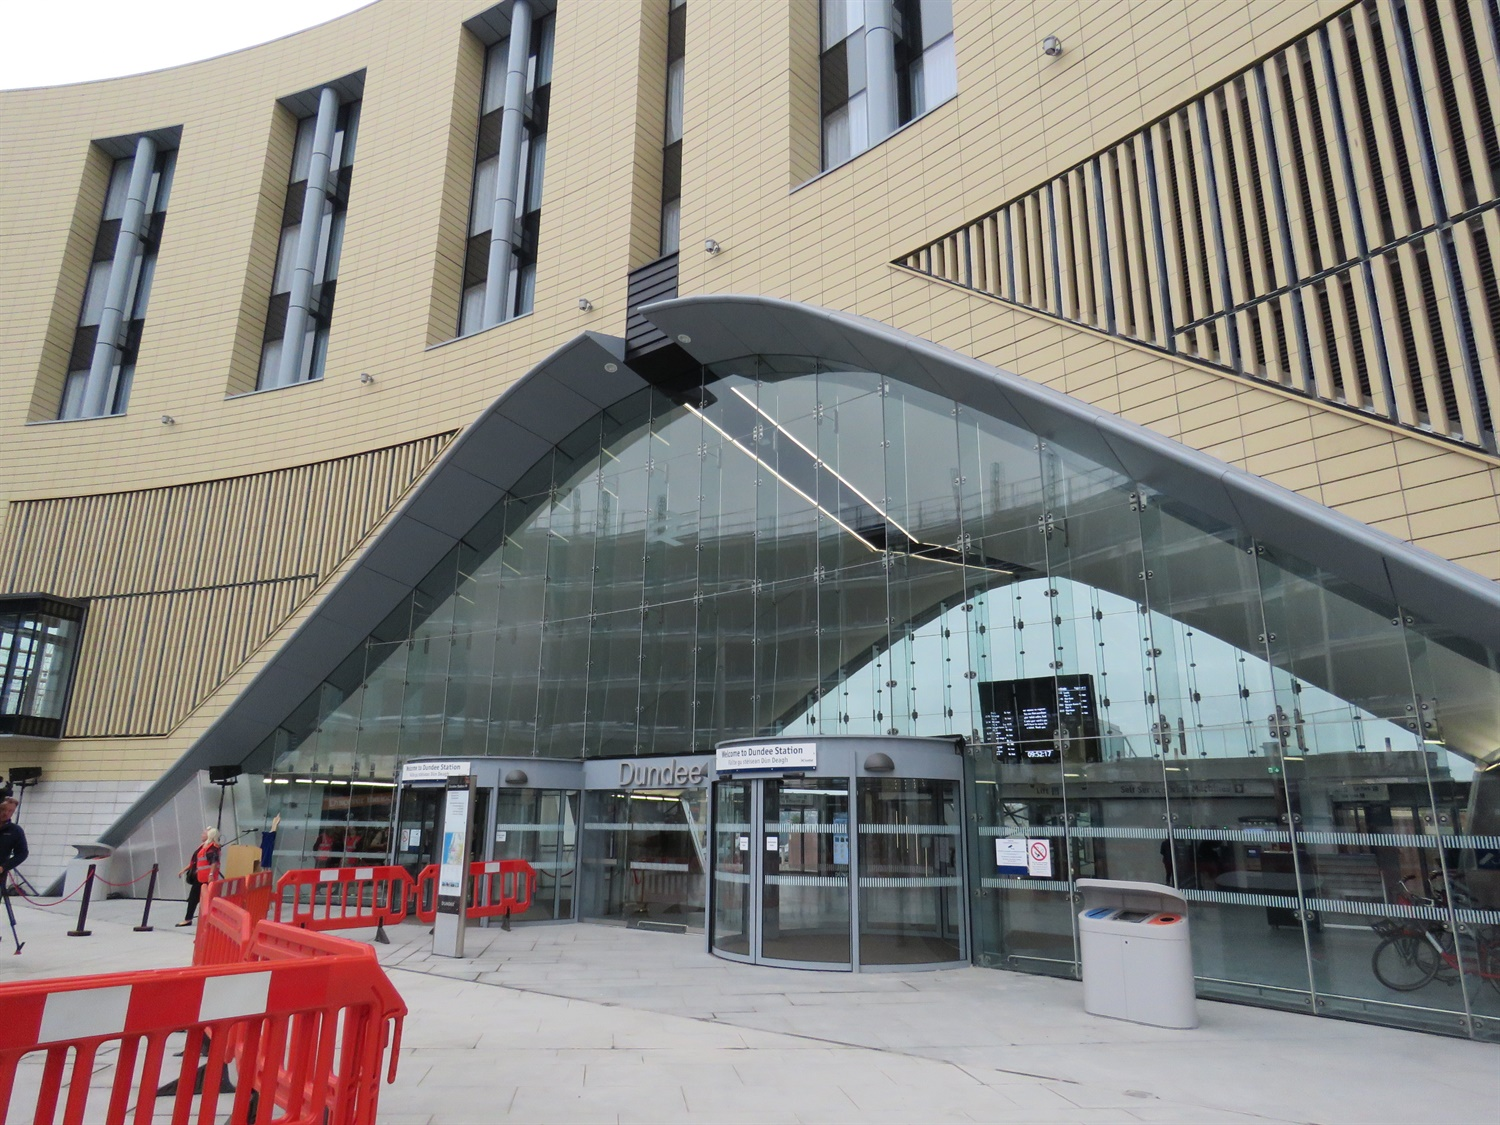 State-of-the-art Dundee station opened after 20 years of planning